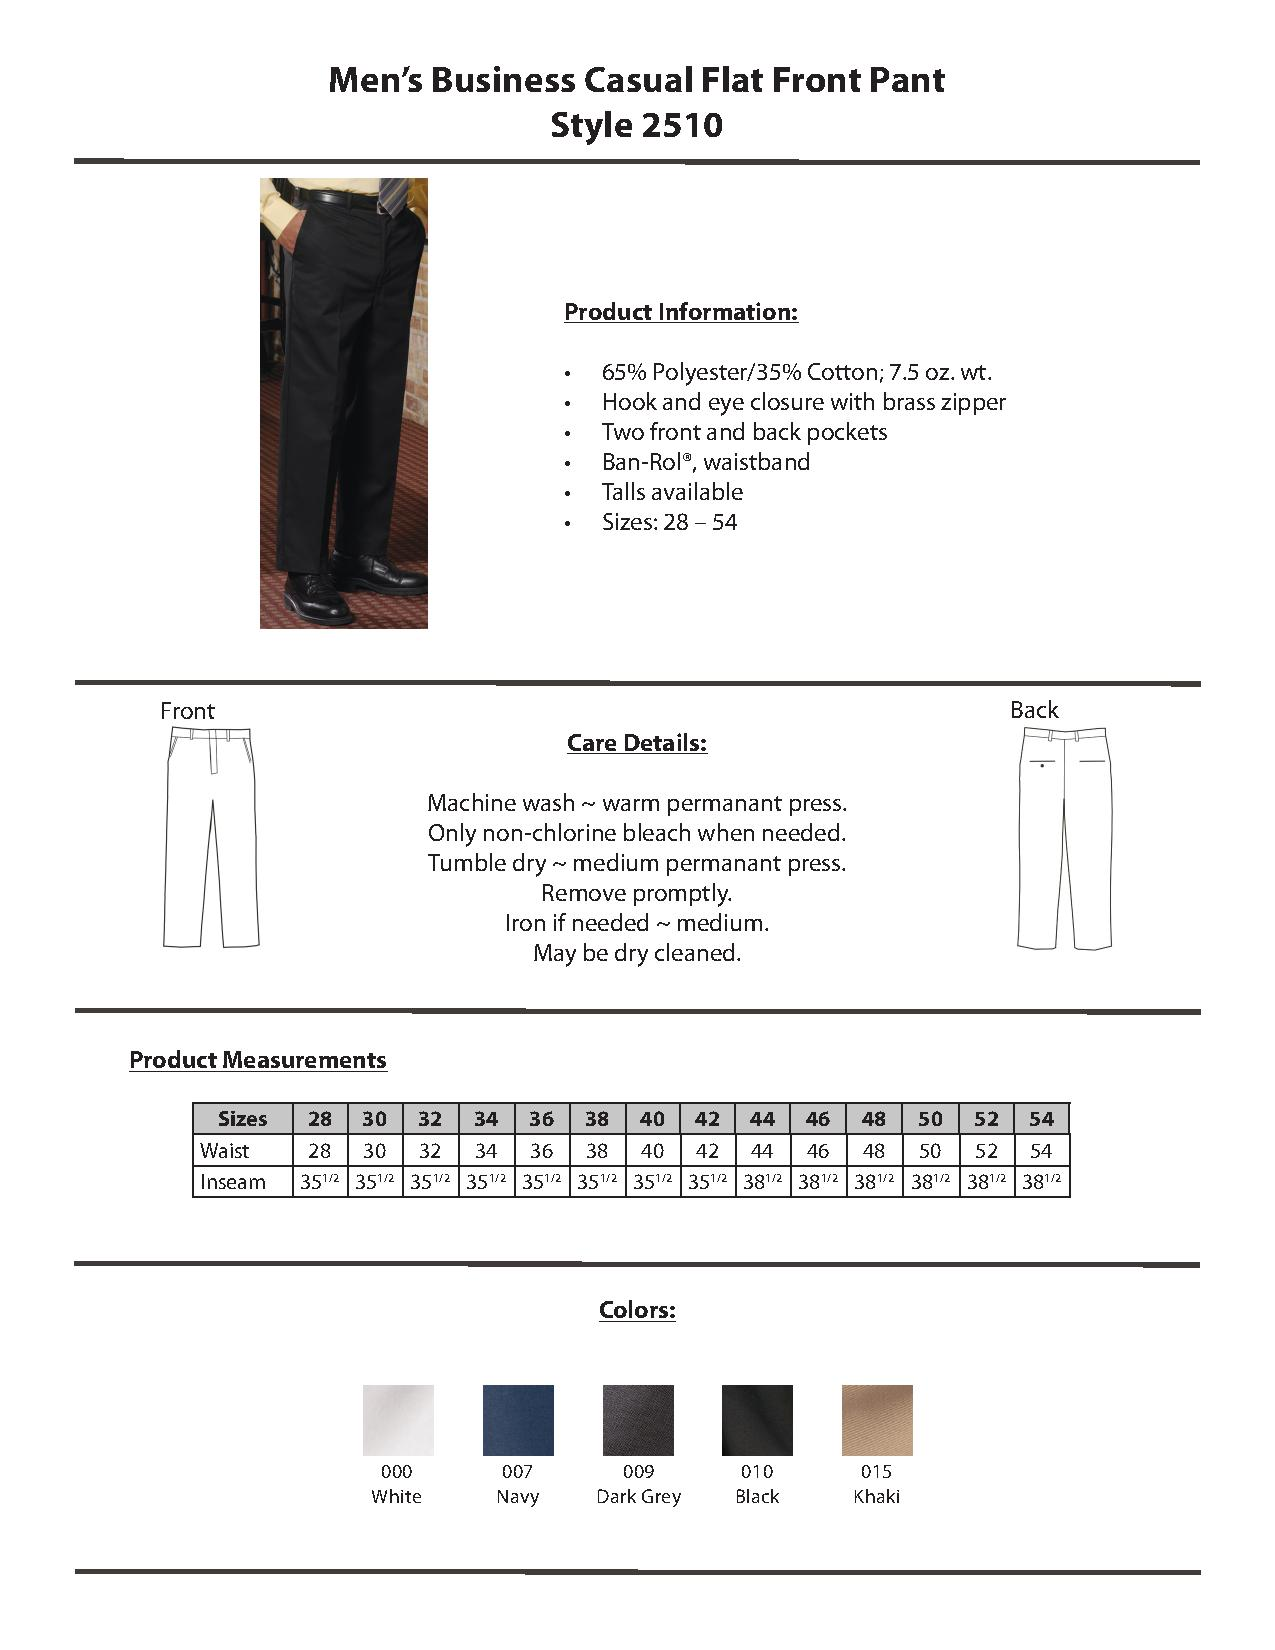 034e725f97f Edwards Garment 2510 - Men s Business Casual Flat Front Pant  29.60 ...